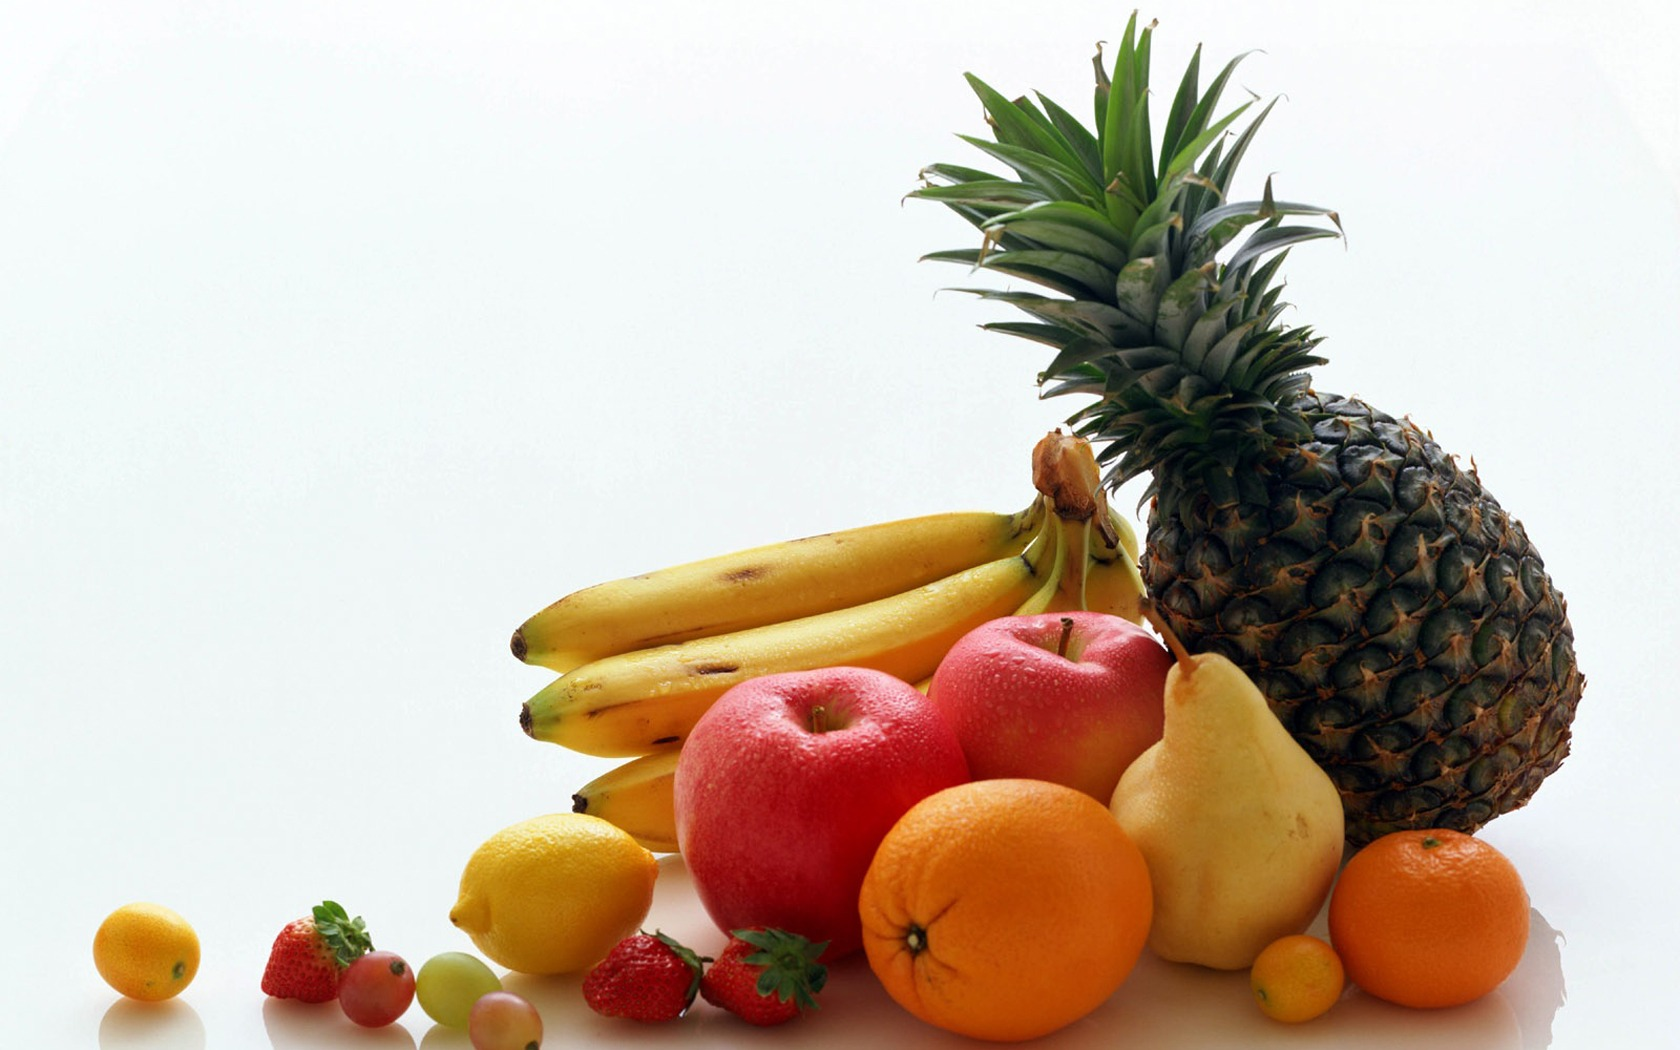 Wallpaper of fruits - Fresh Fruits Wallpaper Fruits Nature Wallpapers